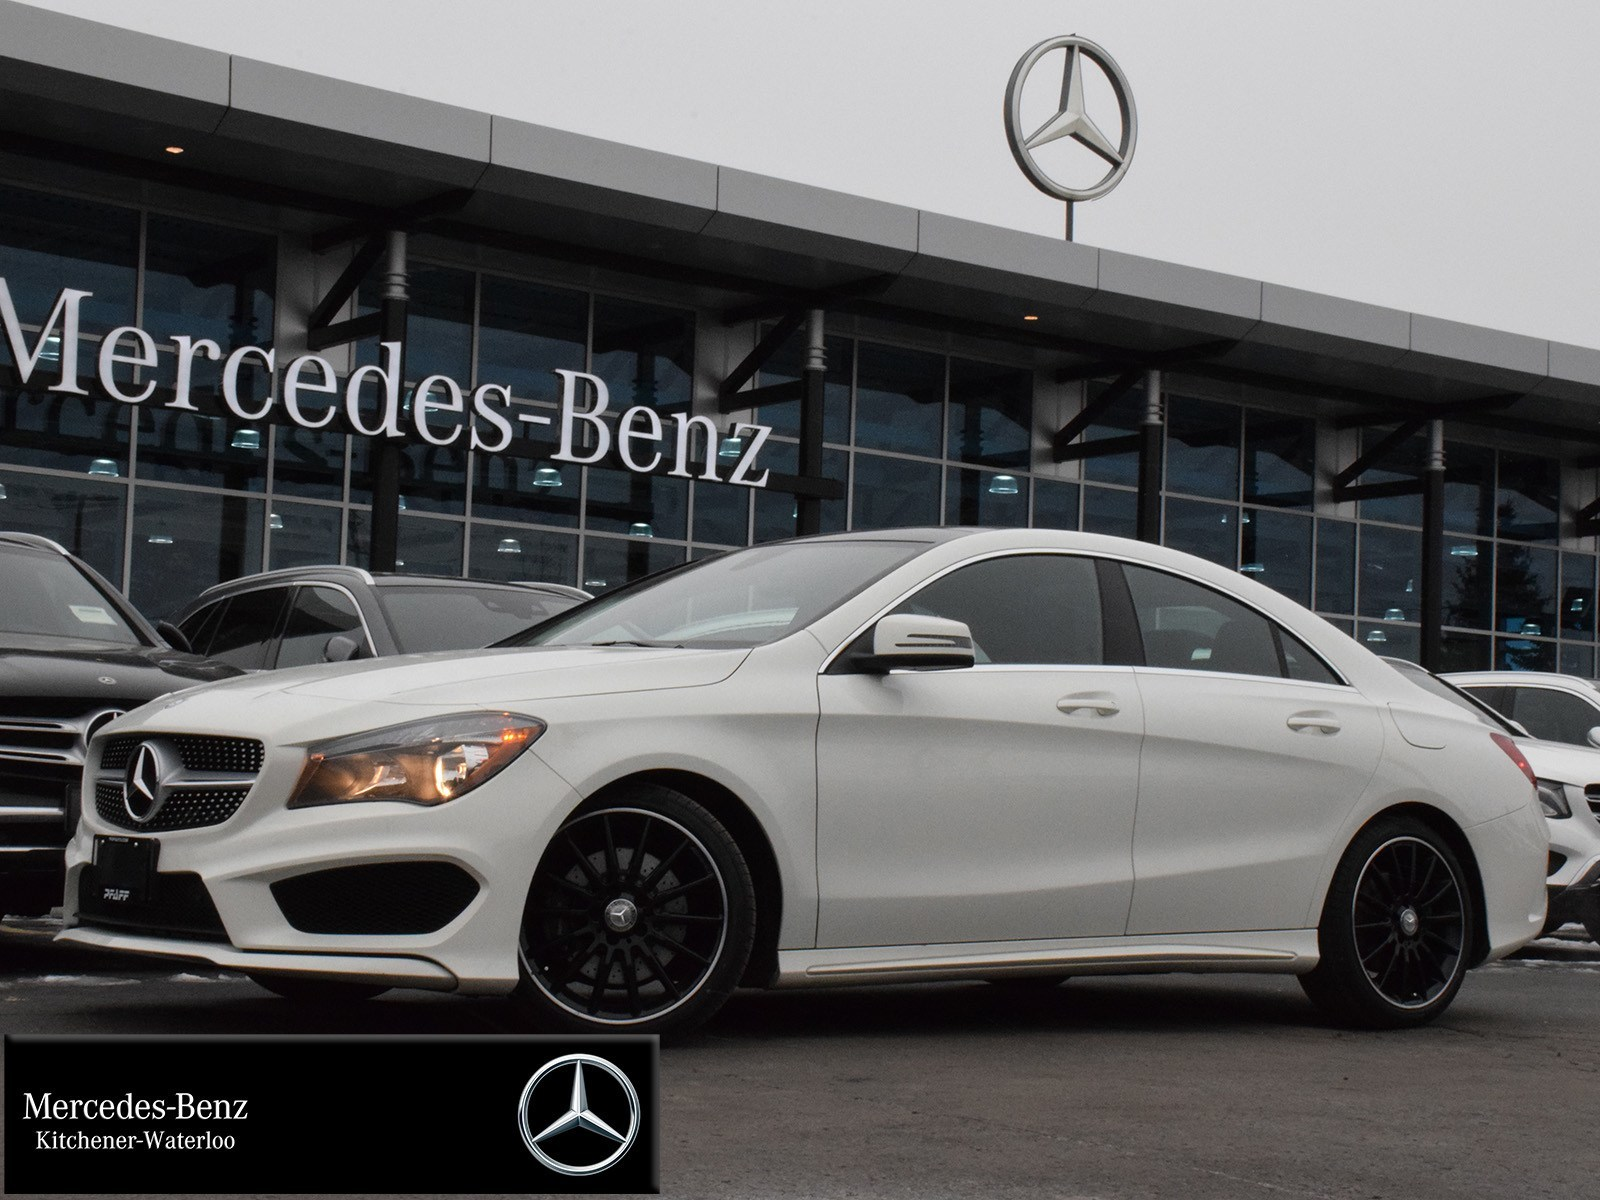 Certified Pre-Owned 2015 Mercedes-Benz CLA250 4MATIC Coupe